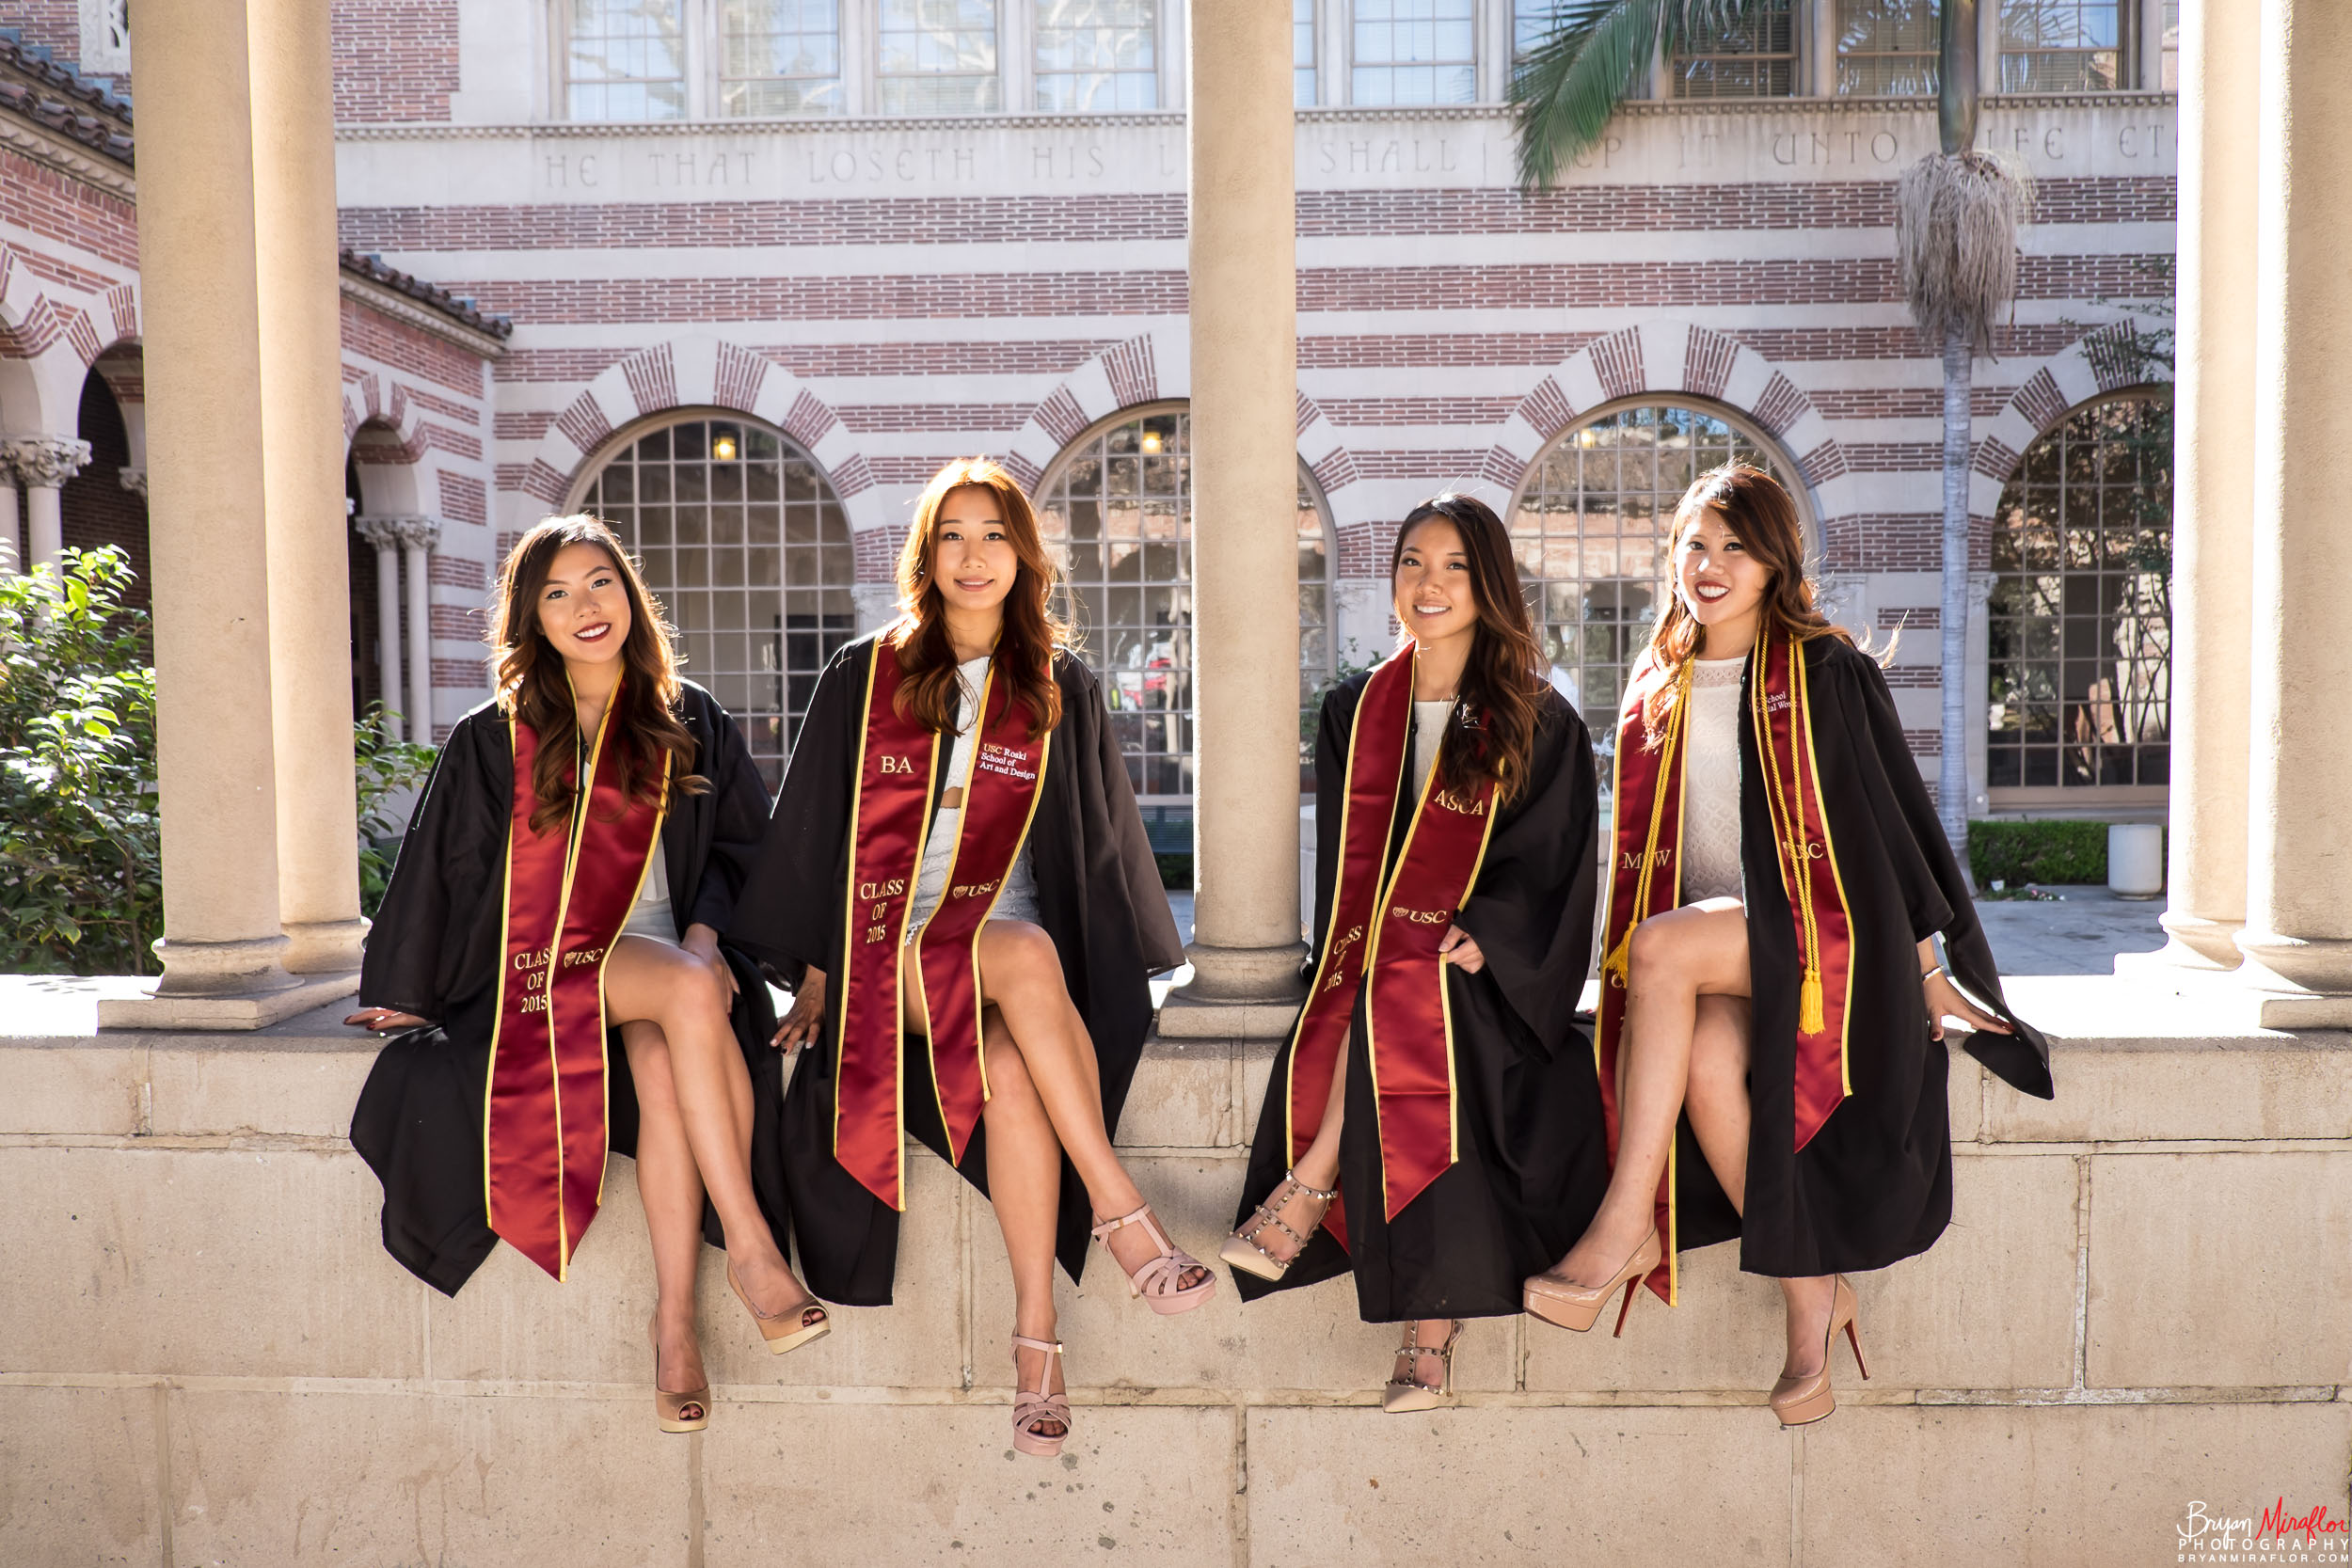 0151-Bryan-Miraflor-Photography-Grad-Portraits-Group-Bo-Dawn-Evelyn-Renee-20150502-0050.jpg